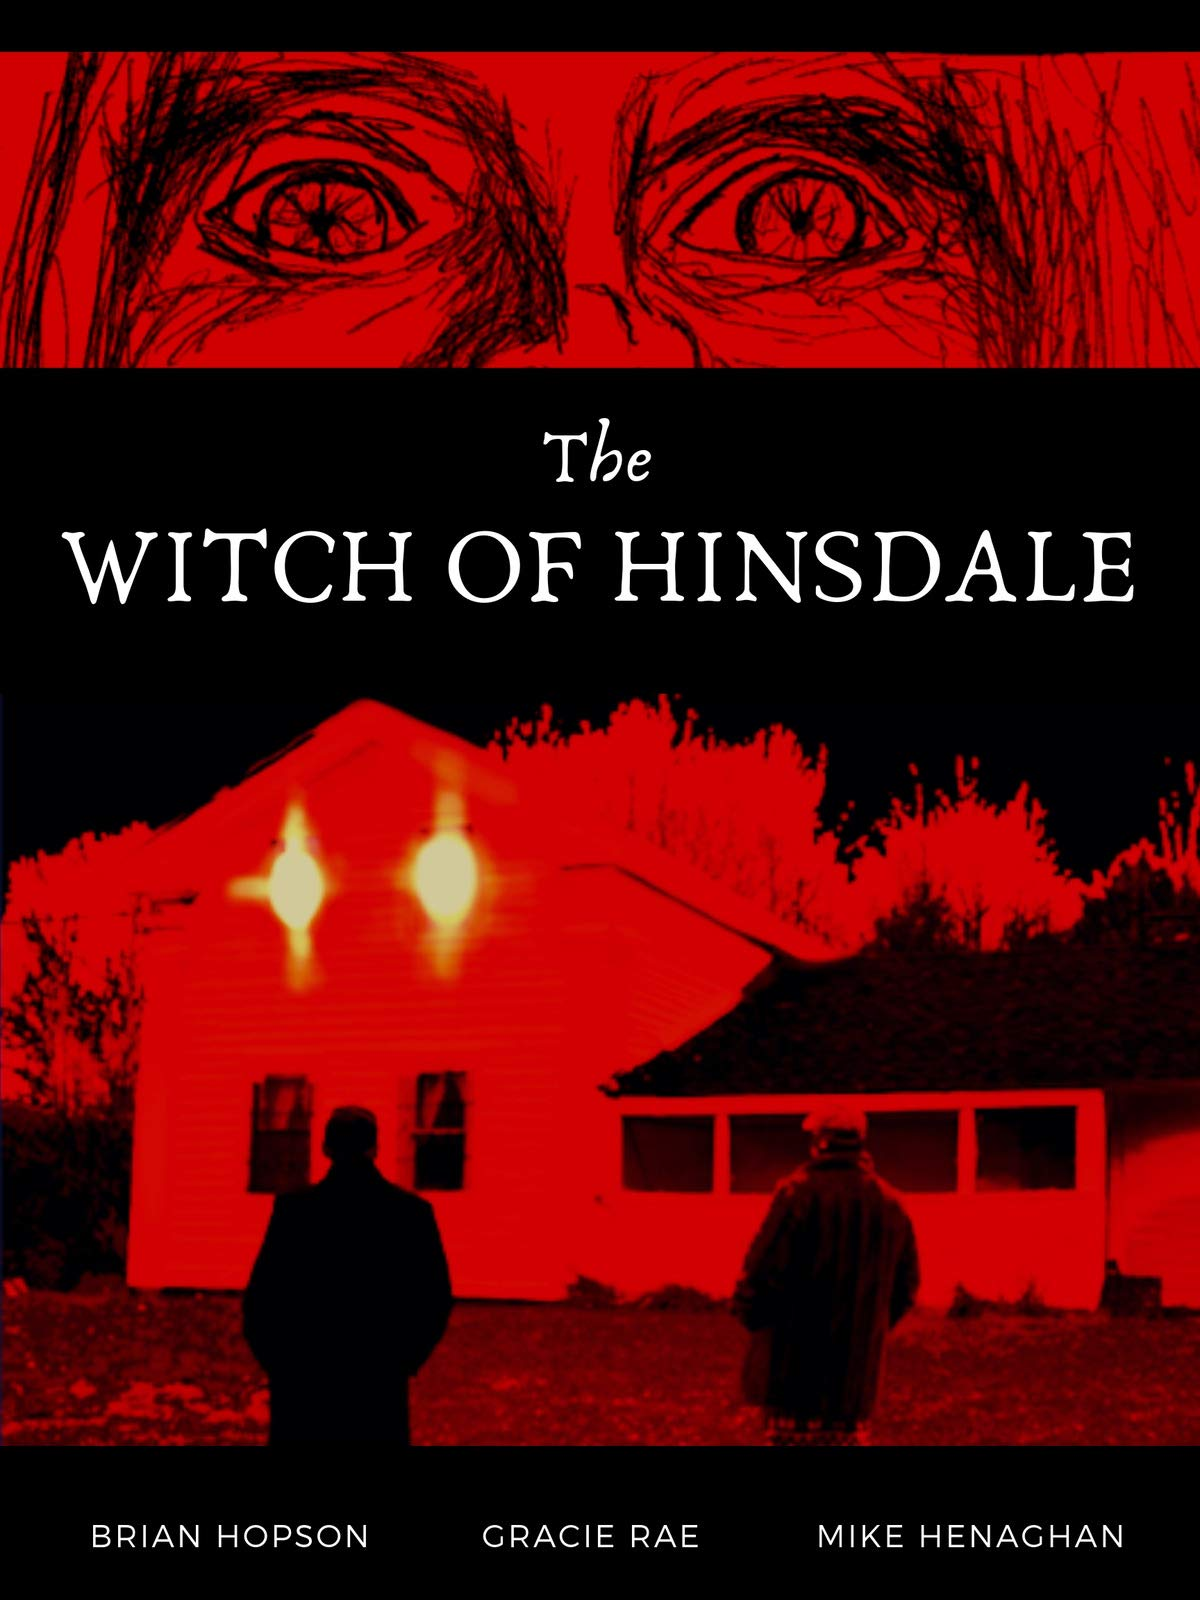 The Witch of Hinsdale